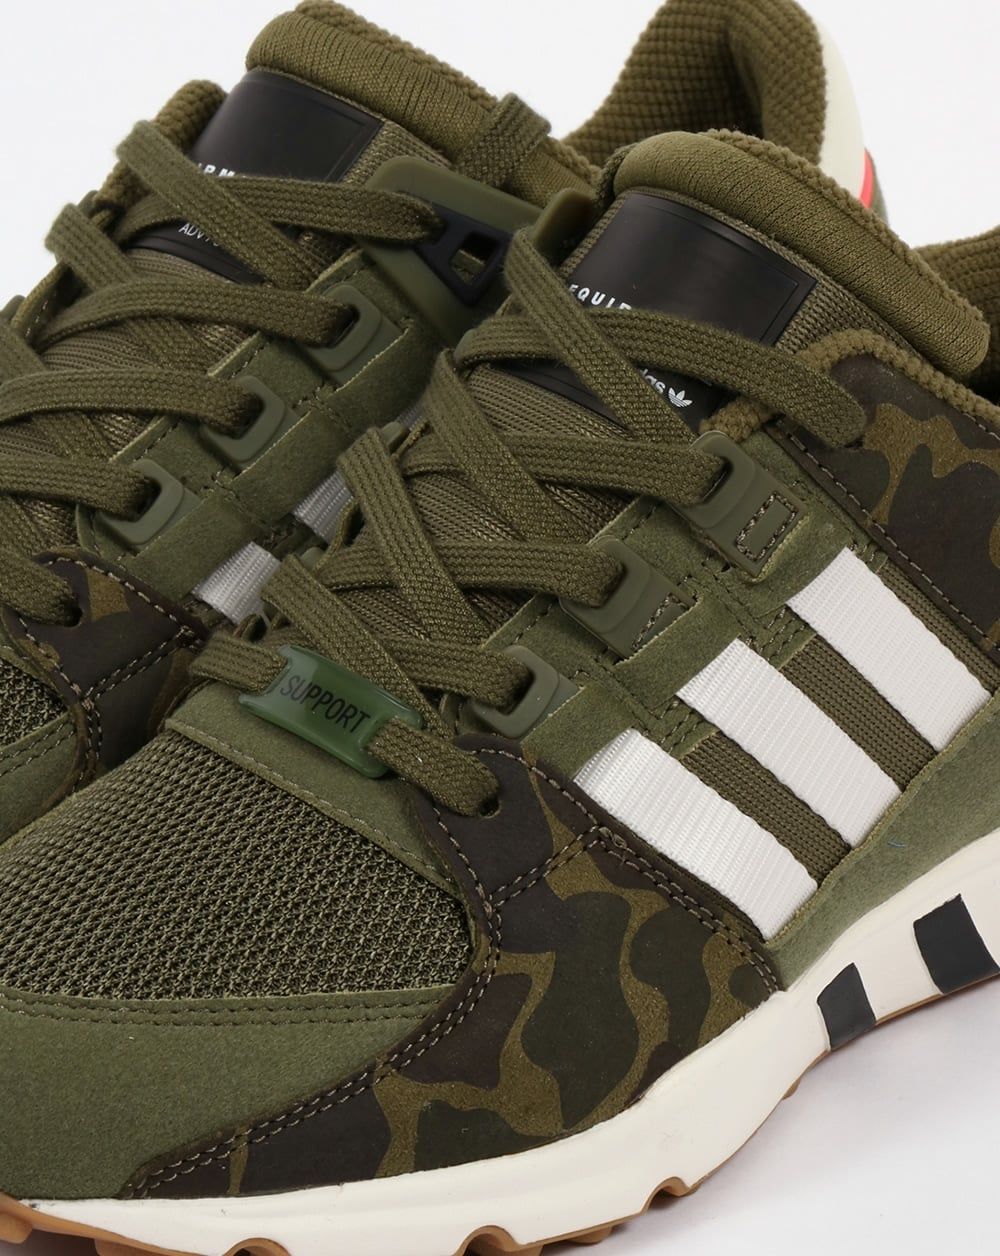 56262bb6aa9c Adidas EQT Support RF Trainers Olive Cargo White